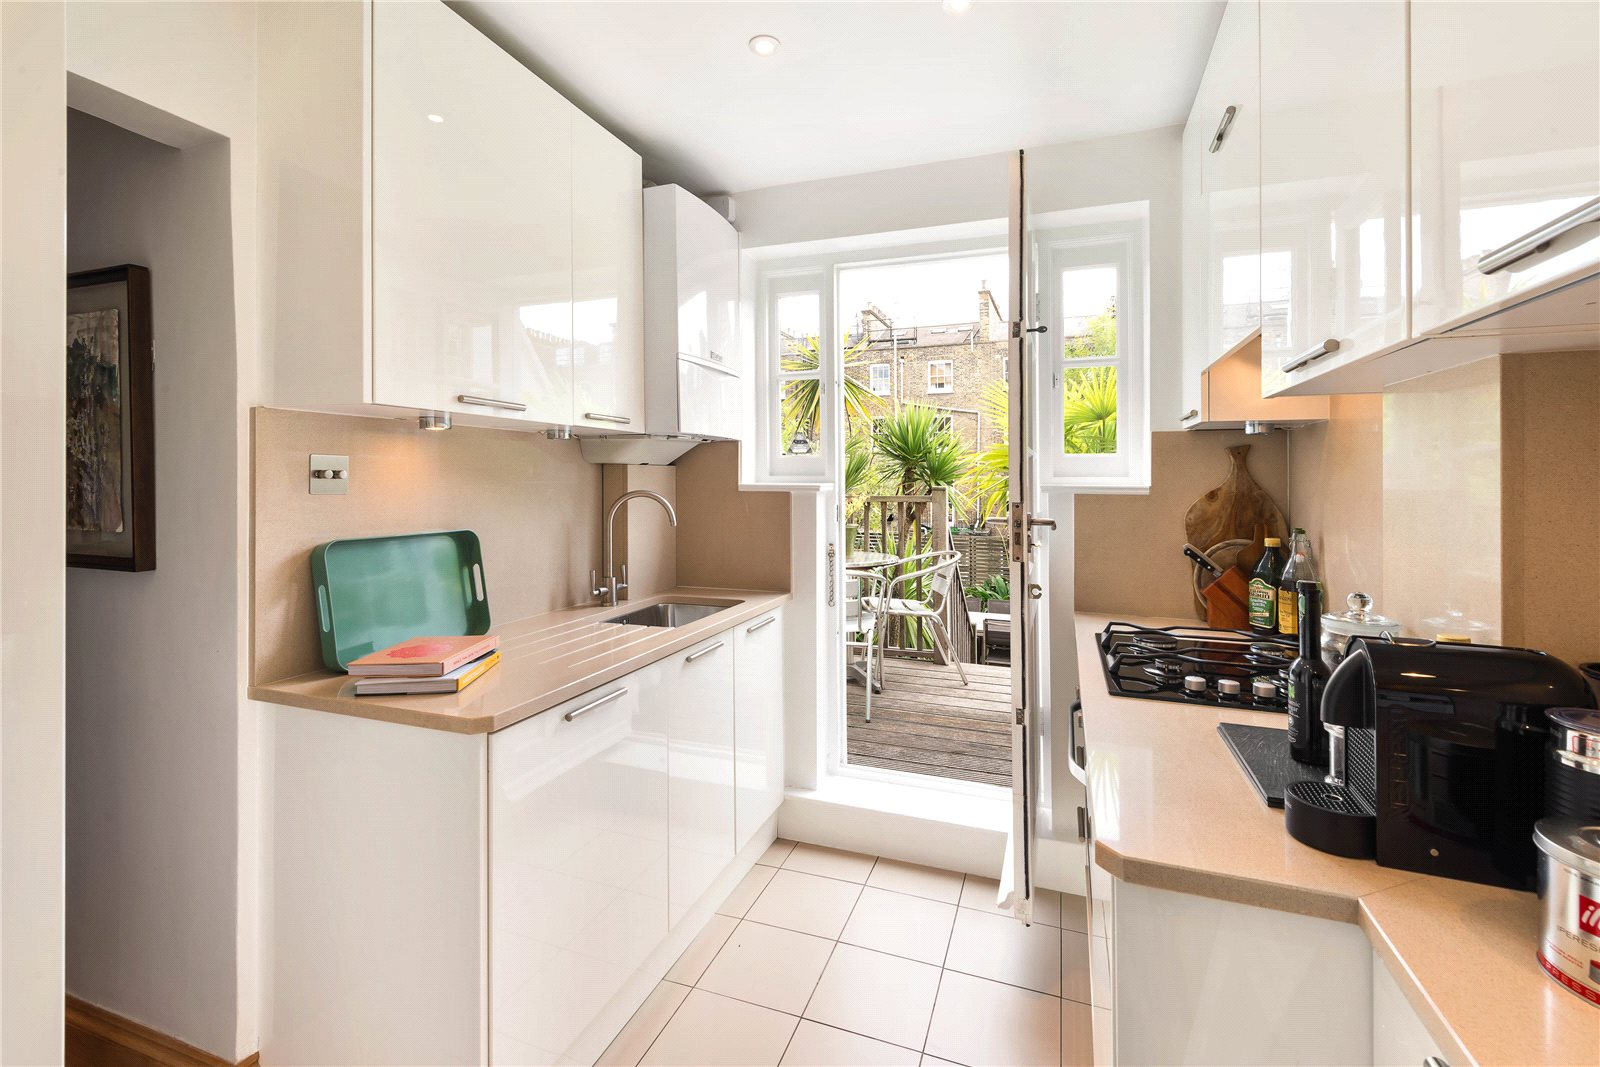 Additional photo for property listing at Cornwall Gardens, South Kensington, London, SW7 South Kensington, London, Αγγλια